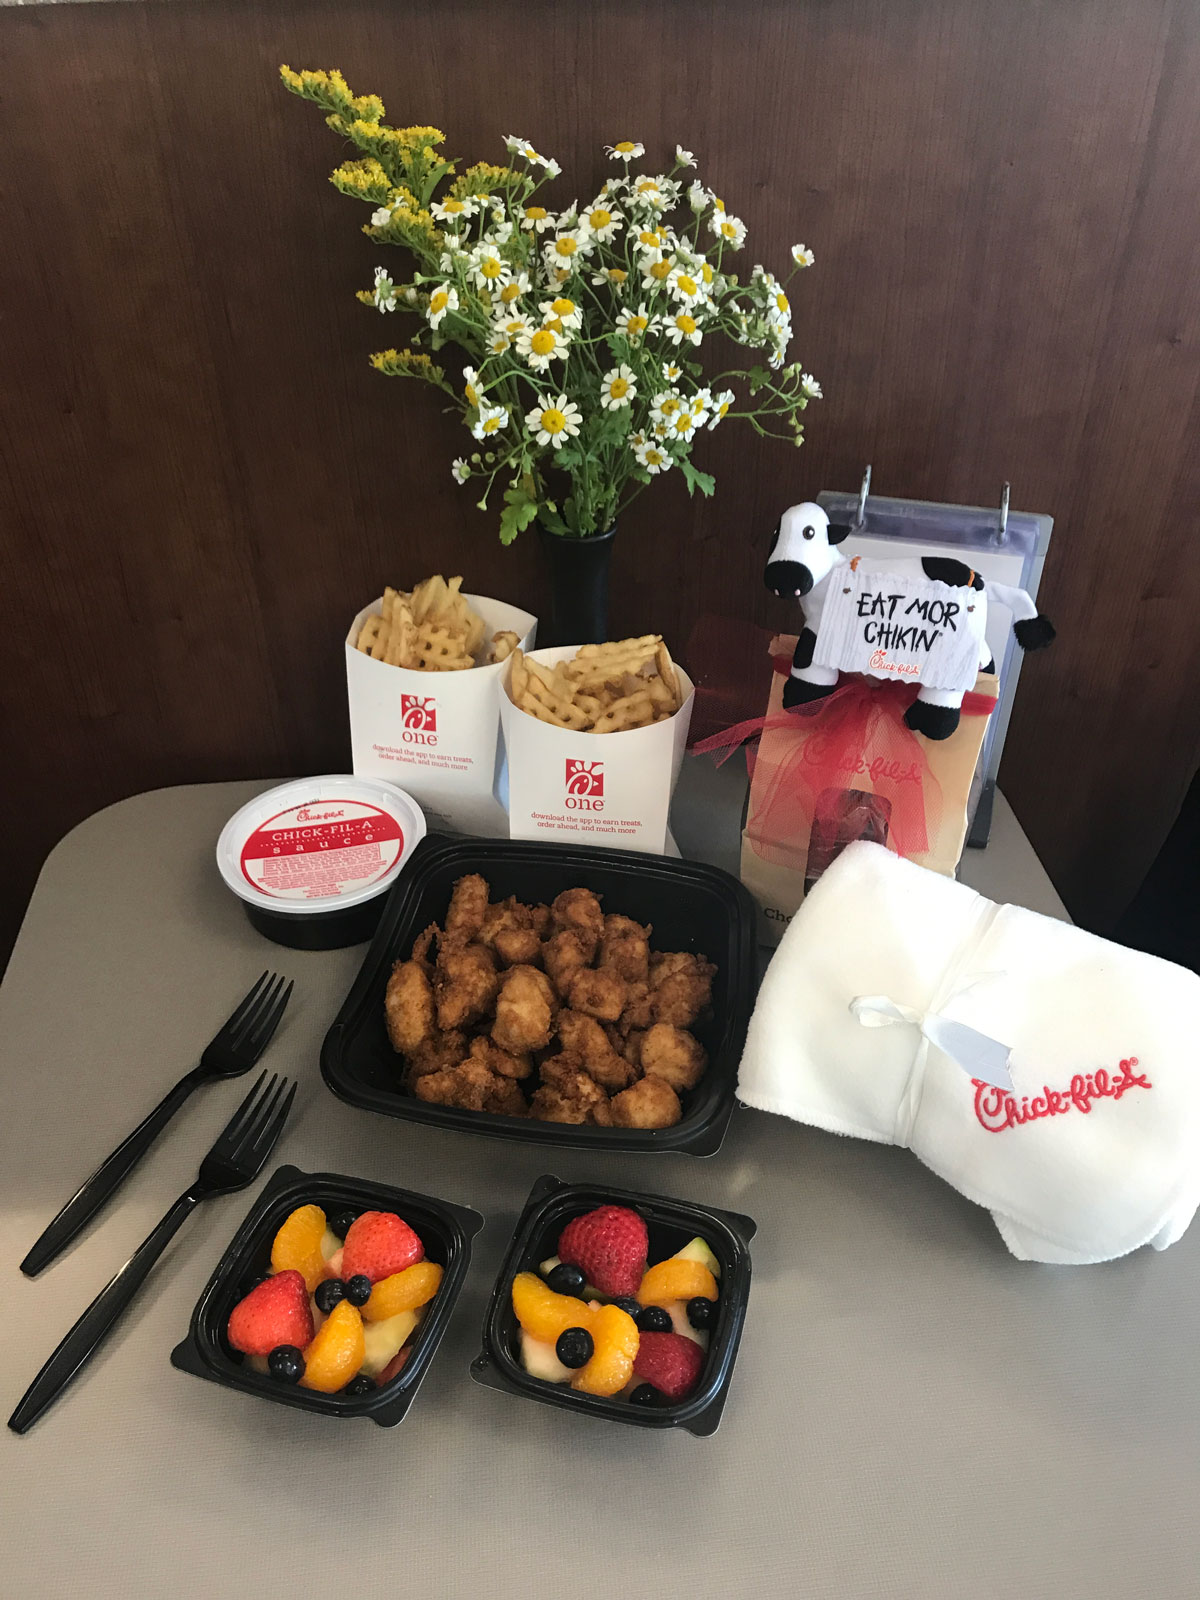 Houston Chick-fil-A